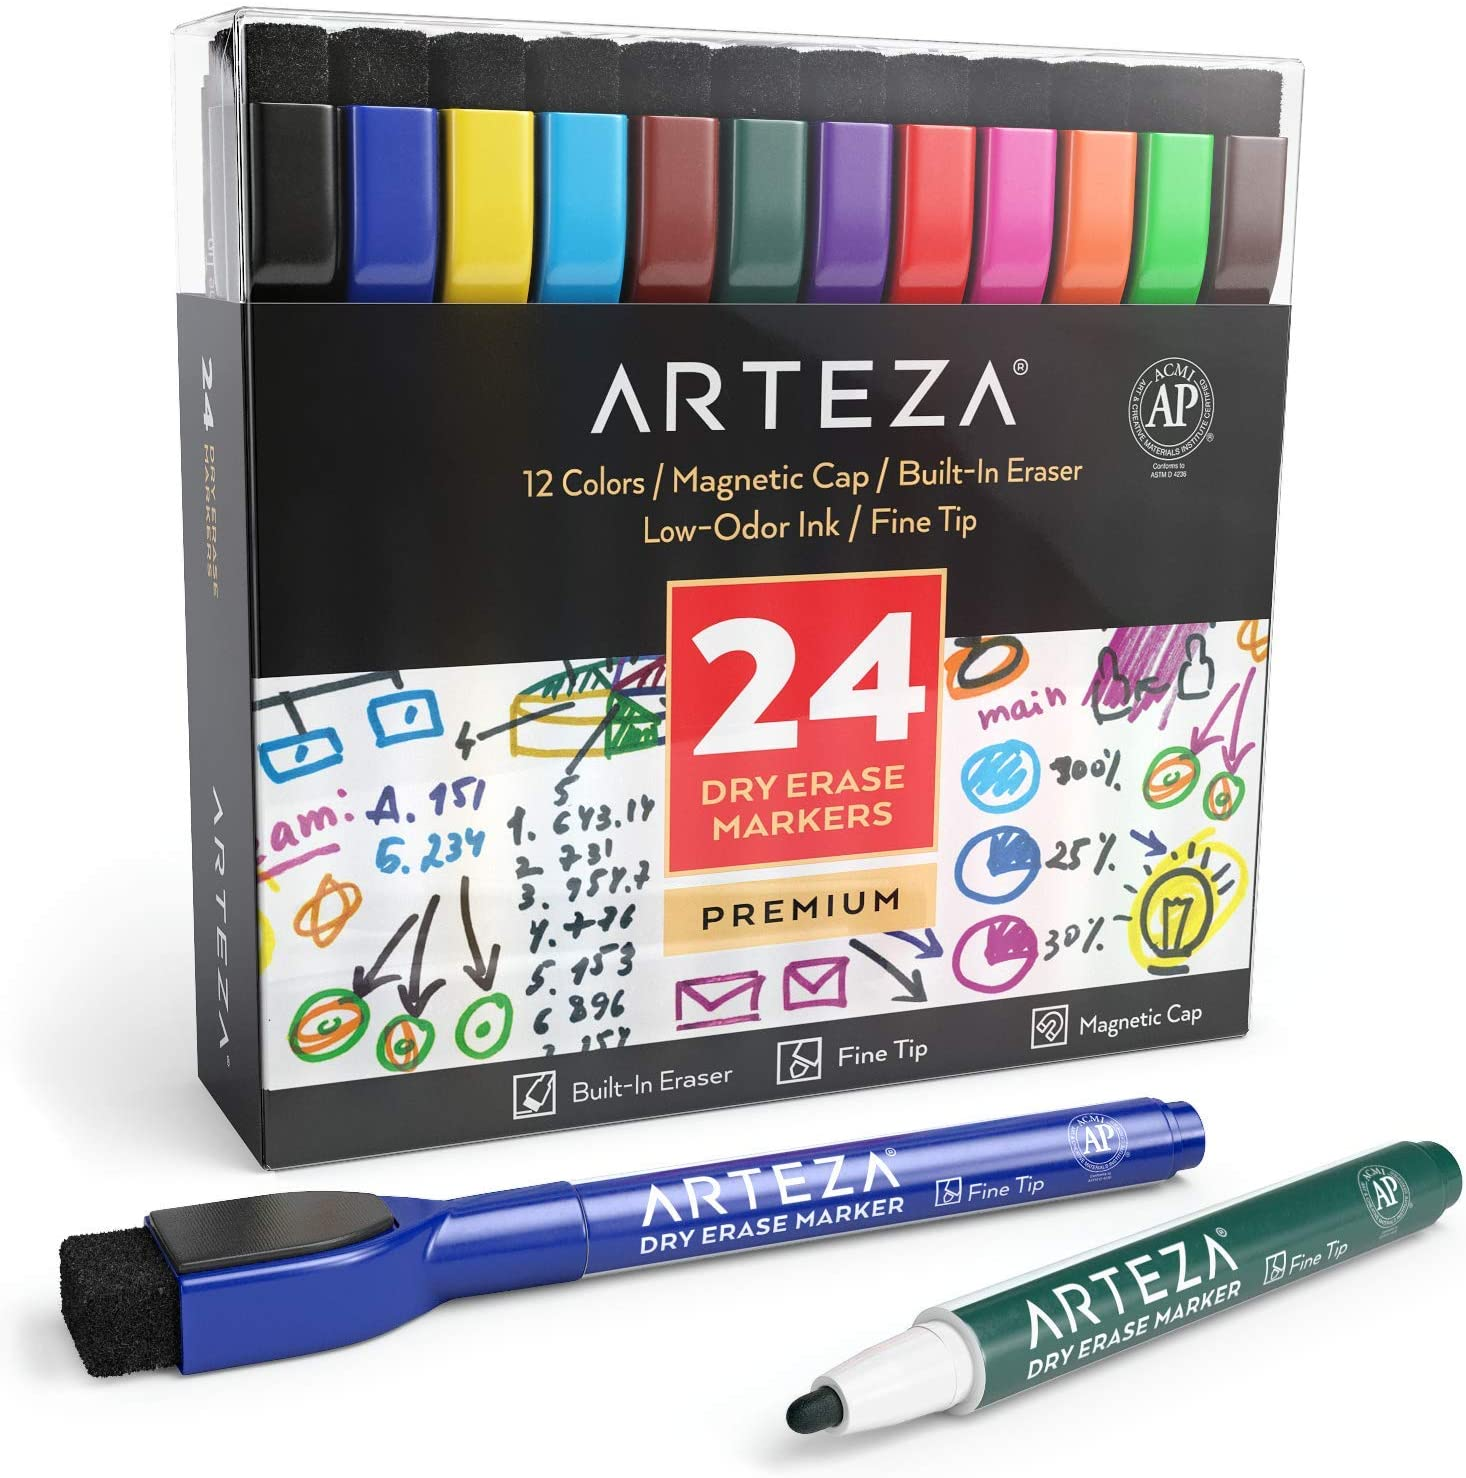 ARTEZA Magnetic Dry Erase Markers with Eraser, Pack of 24 (with Fine Tip), 12 Assorted Colors with Low-Odor Ink, Whiteboard Pens is perfect for School, Office, or Home